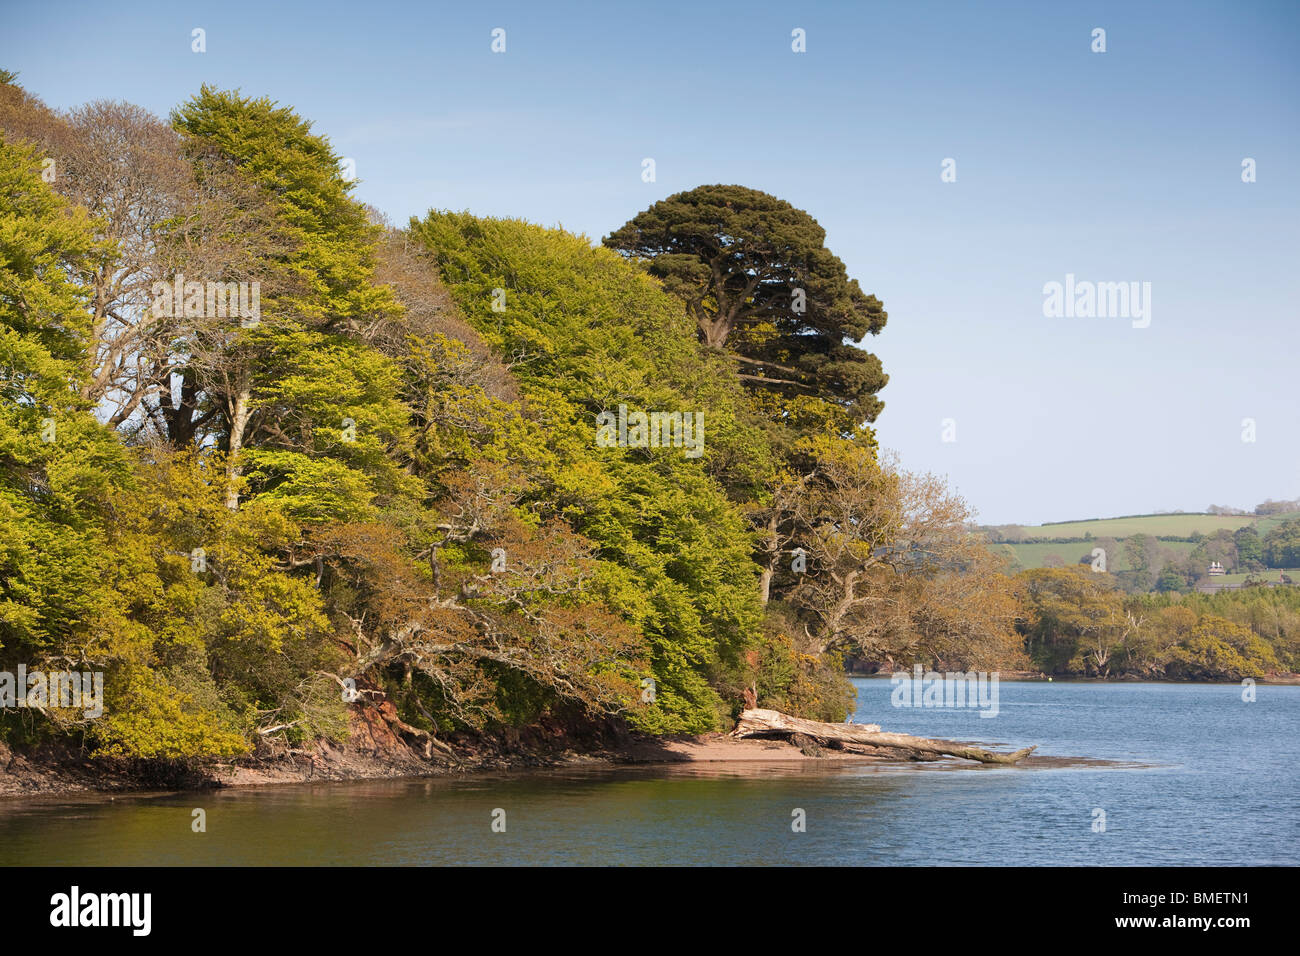 UK, England, Devon, River Dart riverbank trees in new leaf on bend in river - Stock Image